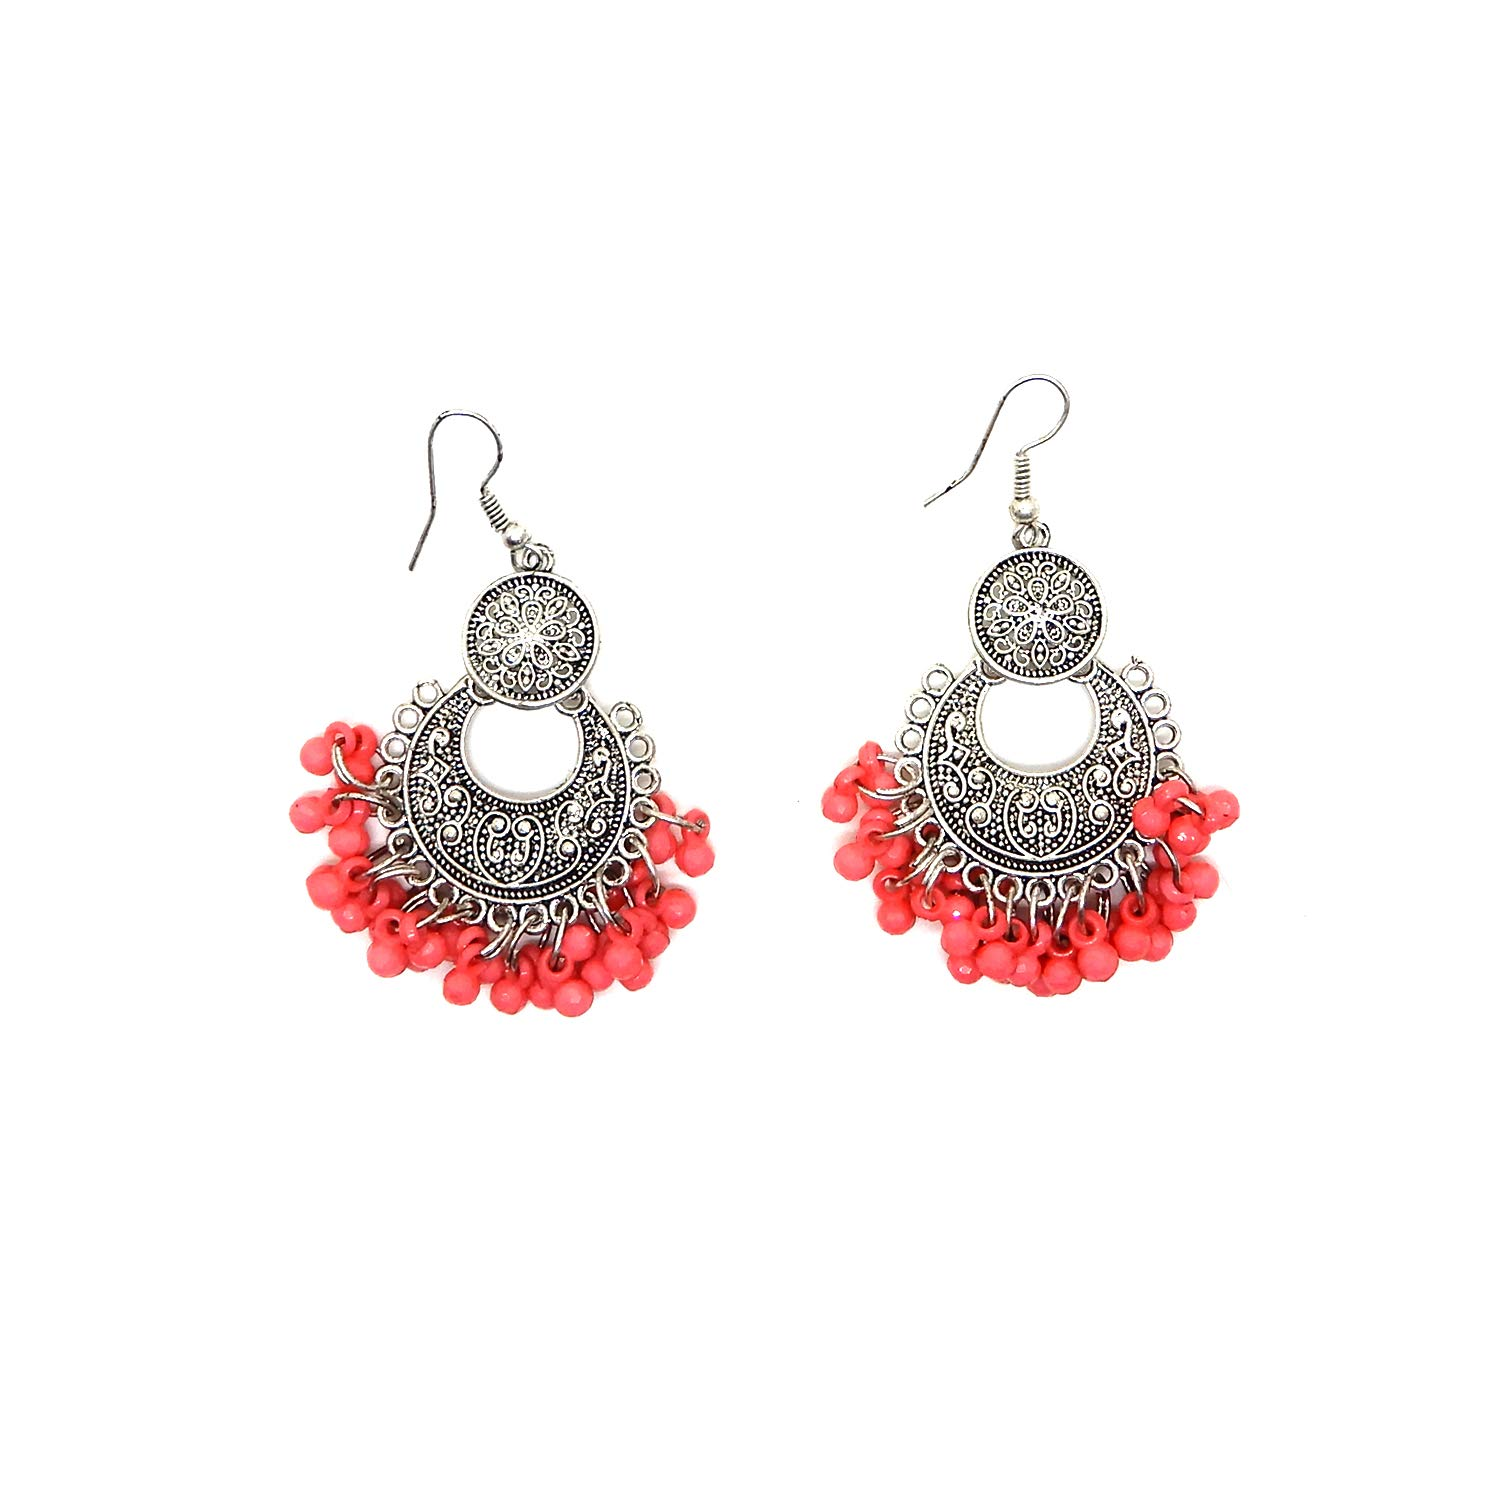 Birthday Gift 2Inch Starnk Fashion Afgani Dangler Chandbali Earrings fro gilrs//women Traditional Earrigns for Party//Festive use Anniversary Gift